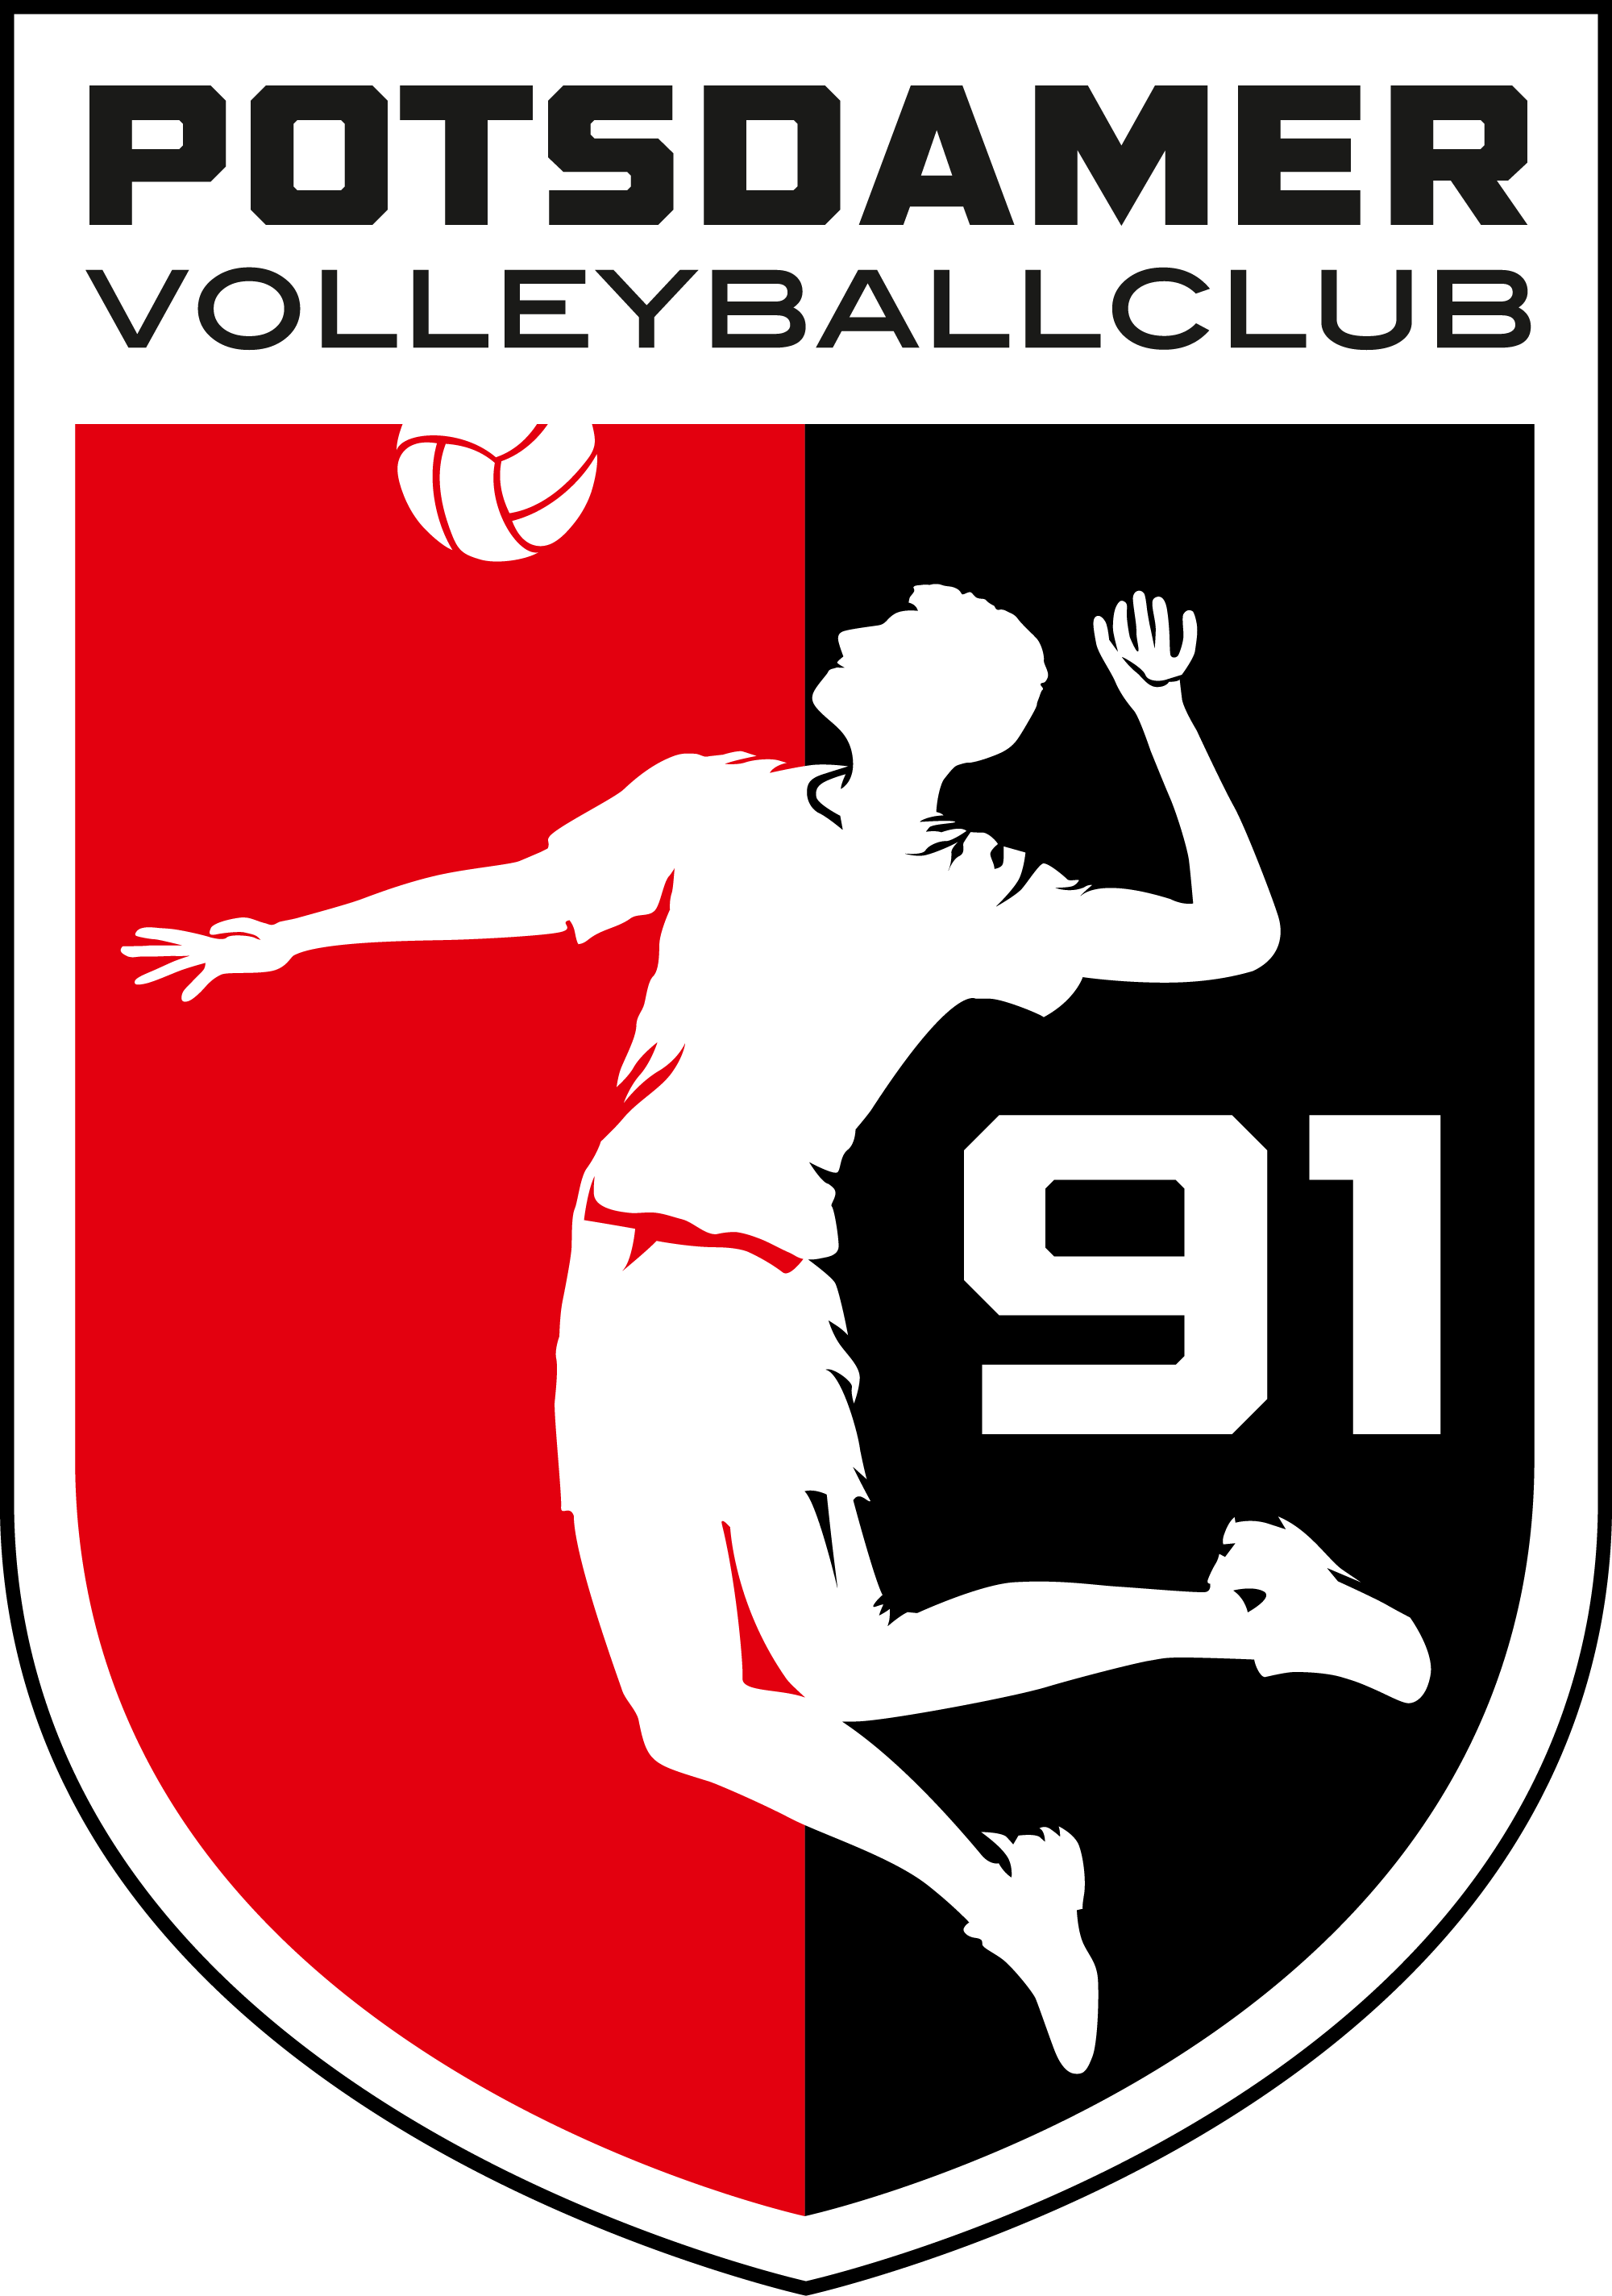 Wappen des Potsdamer Volleyballclubs